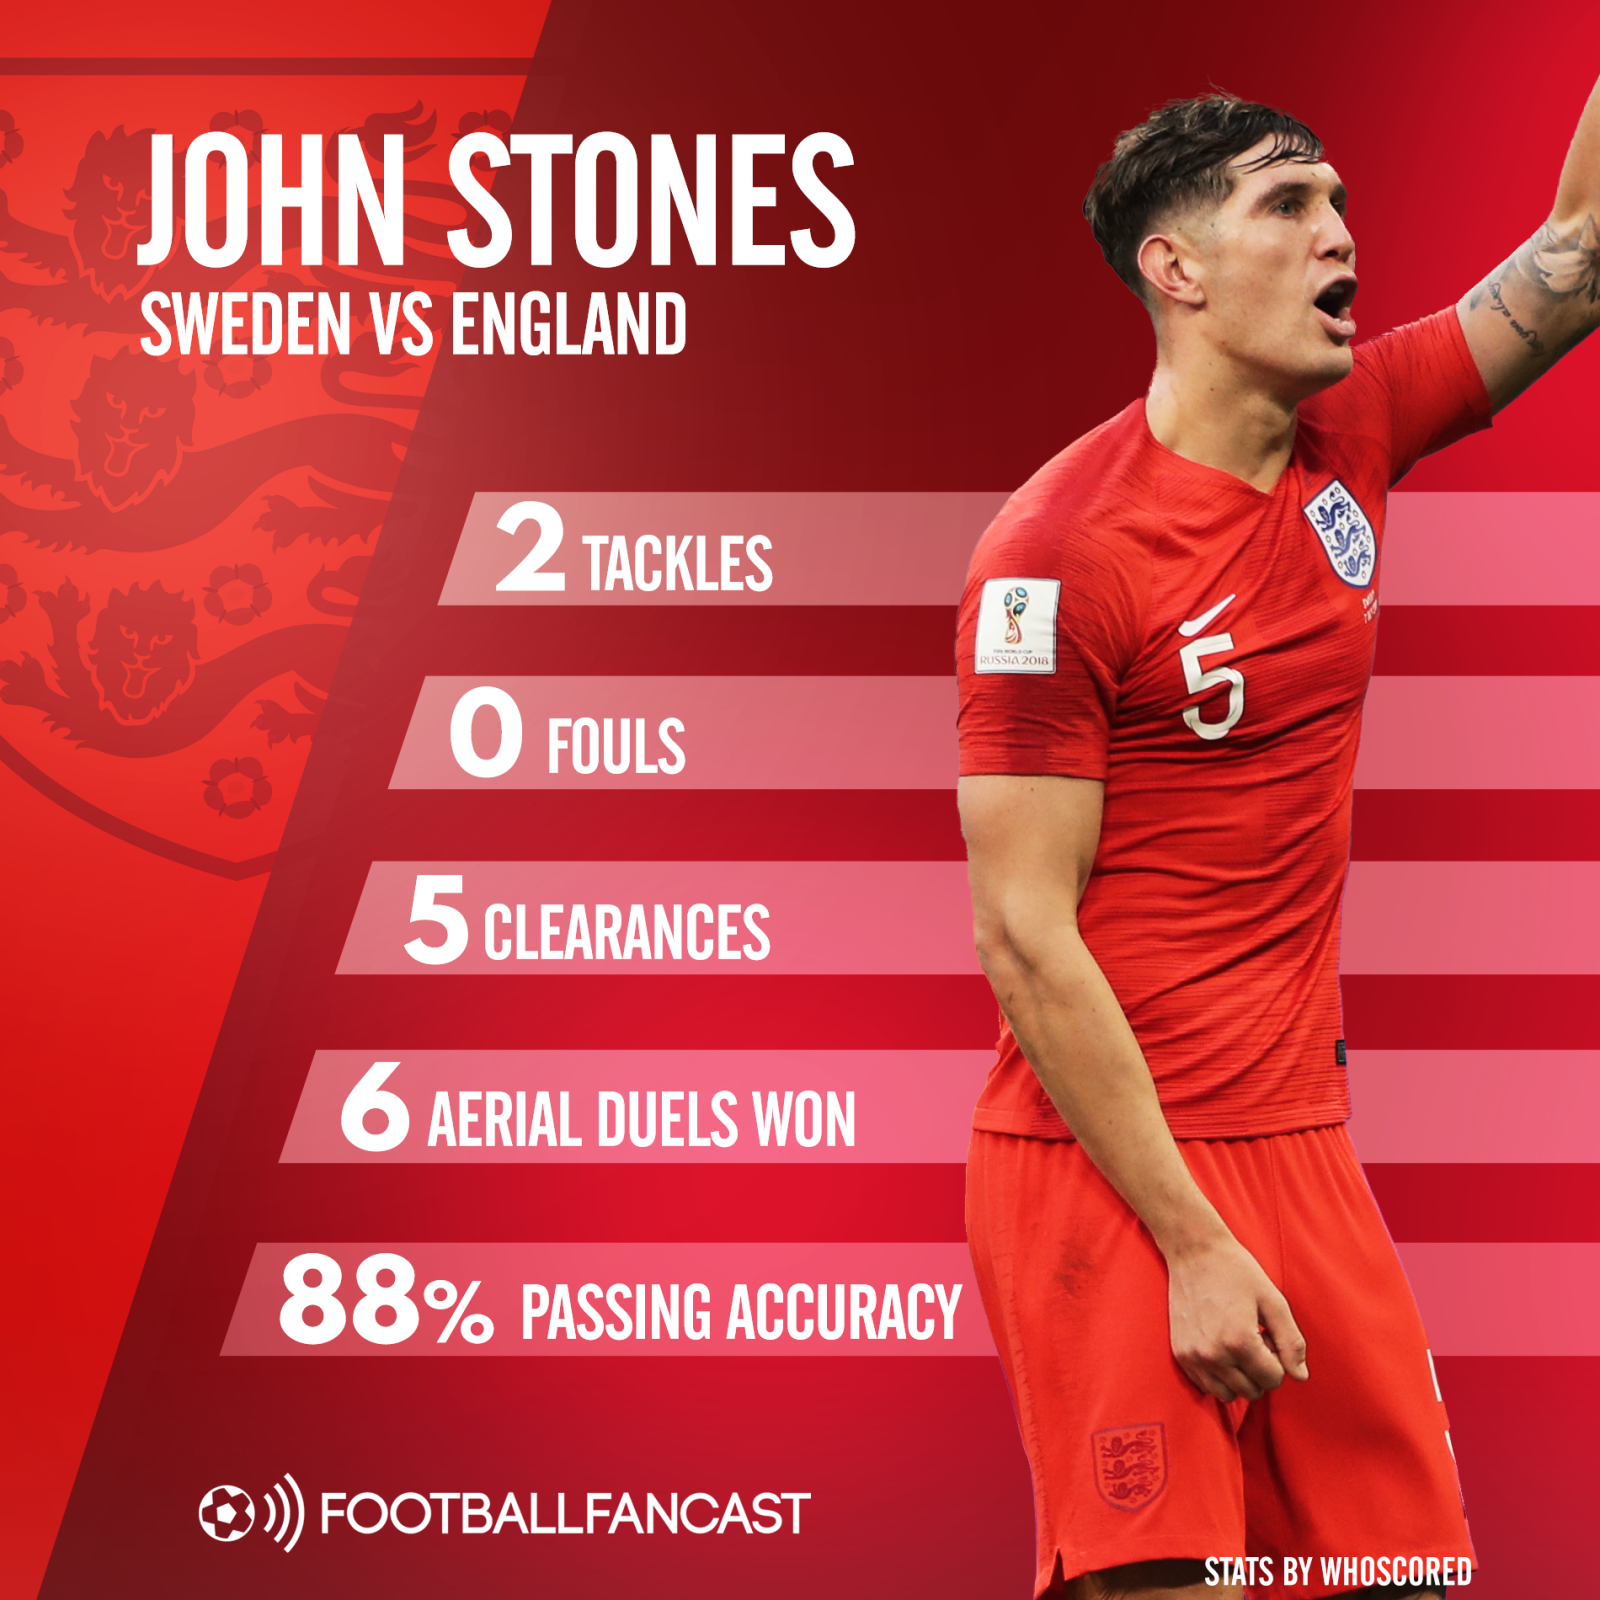 John Stones' stats from England's win over Sweden